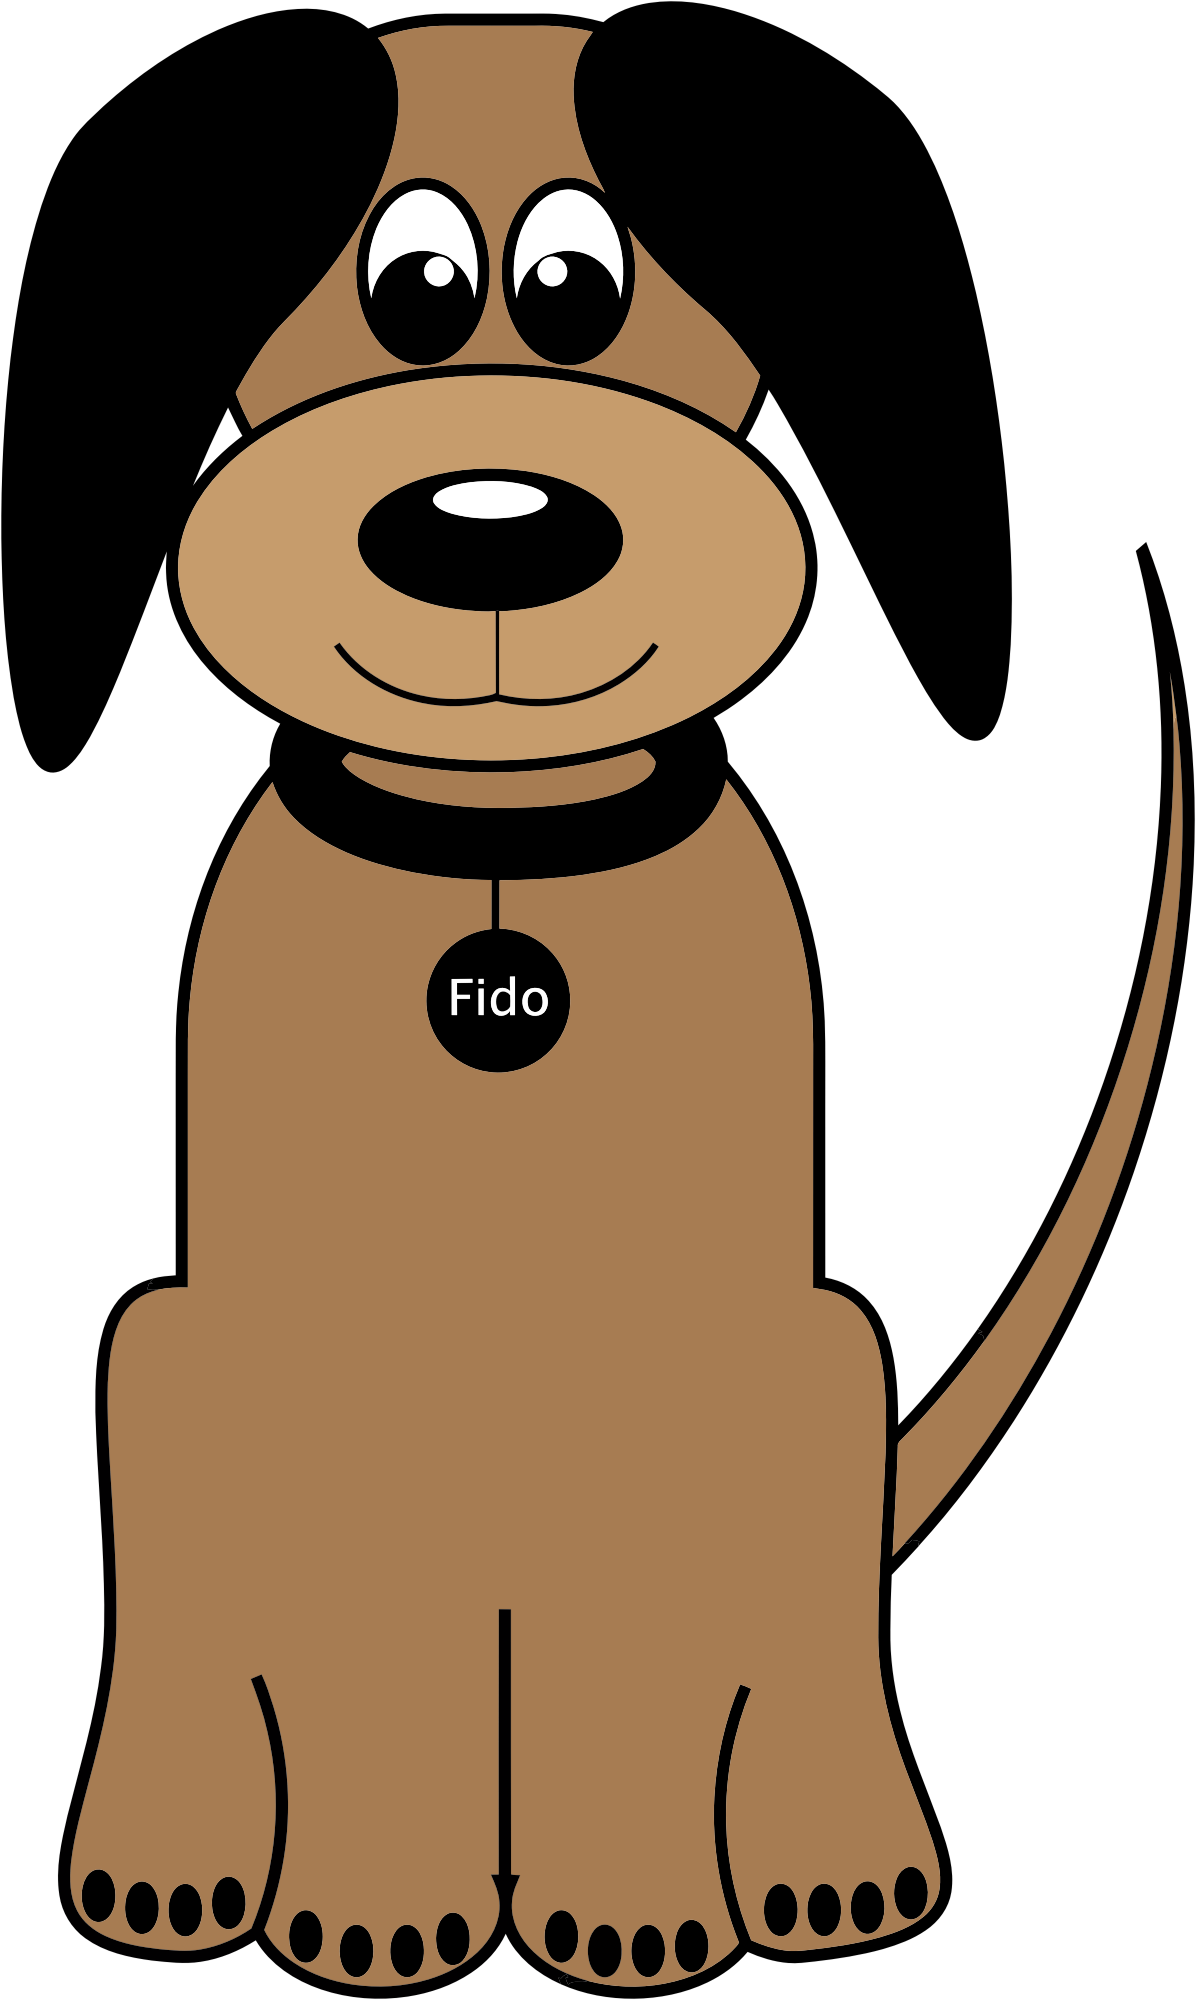 Cartoon Dog Fido by GDJ